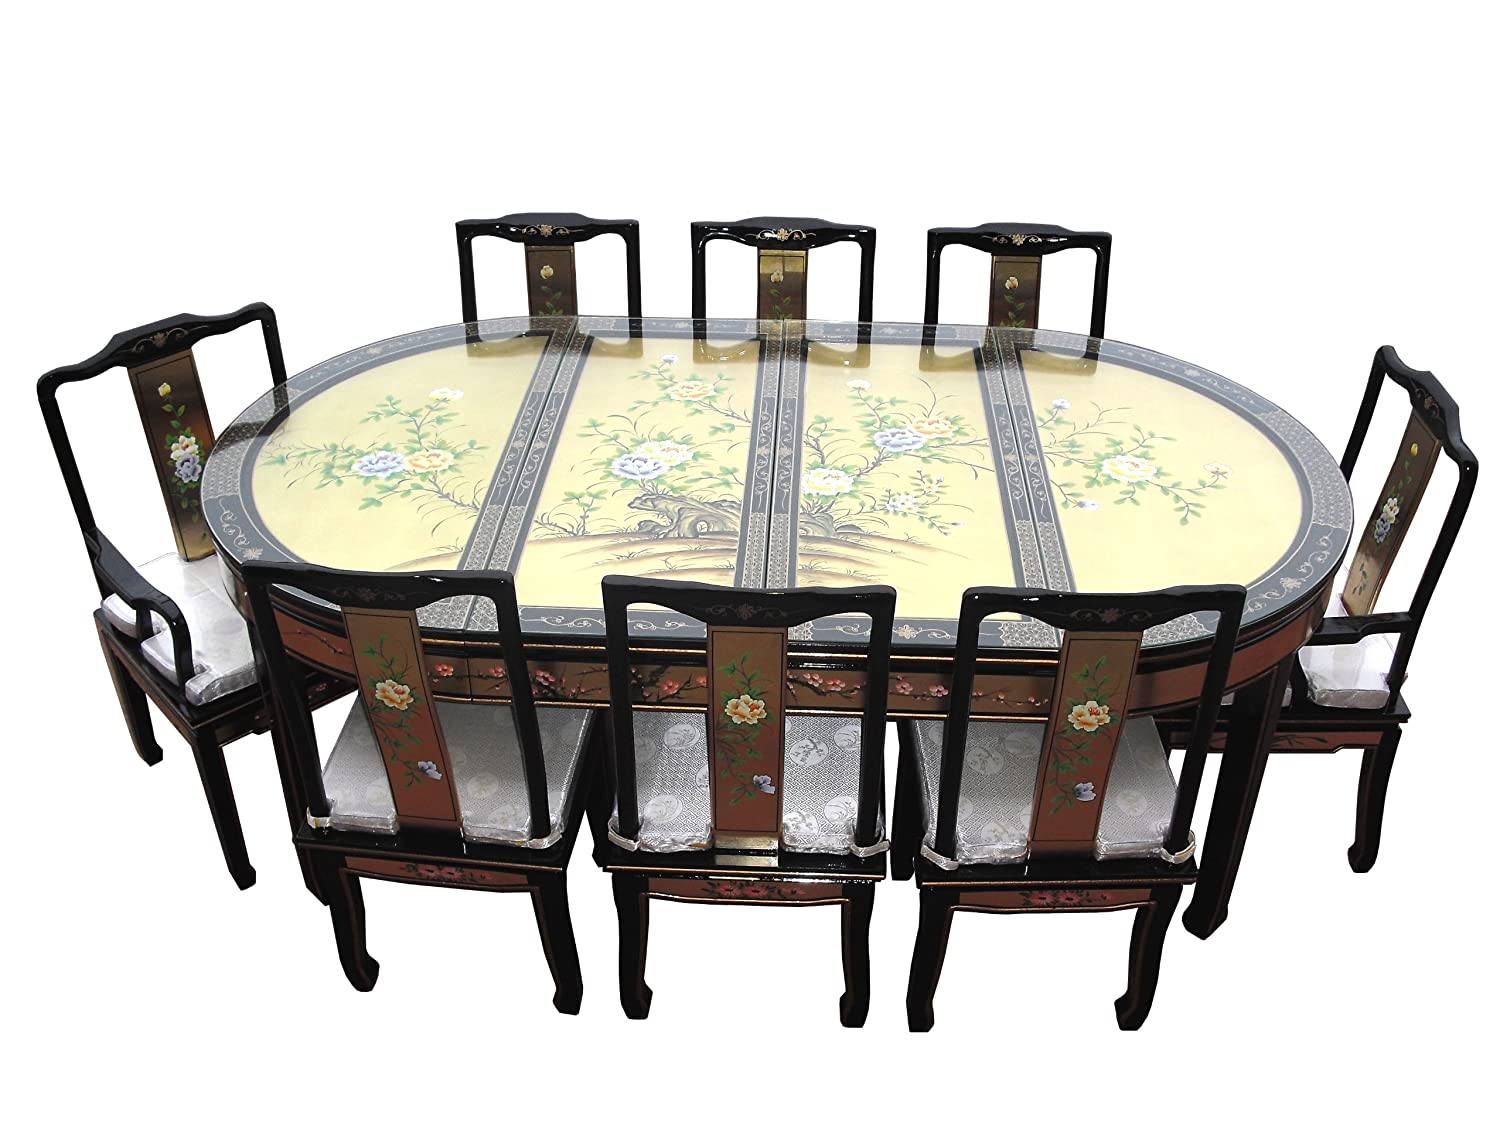 Gold Leaf Dining Table Images Dining Table Ideas : 81RjYySLP8LSL1500 from sorahana.info size 1500 x 1125 jpeg 234kB